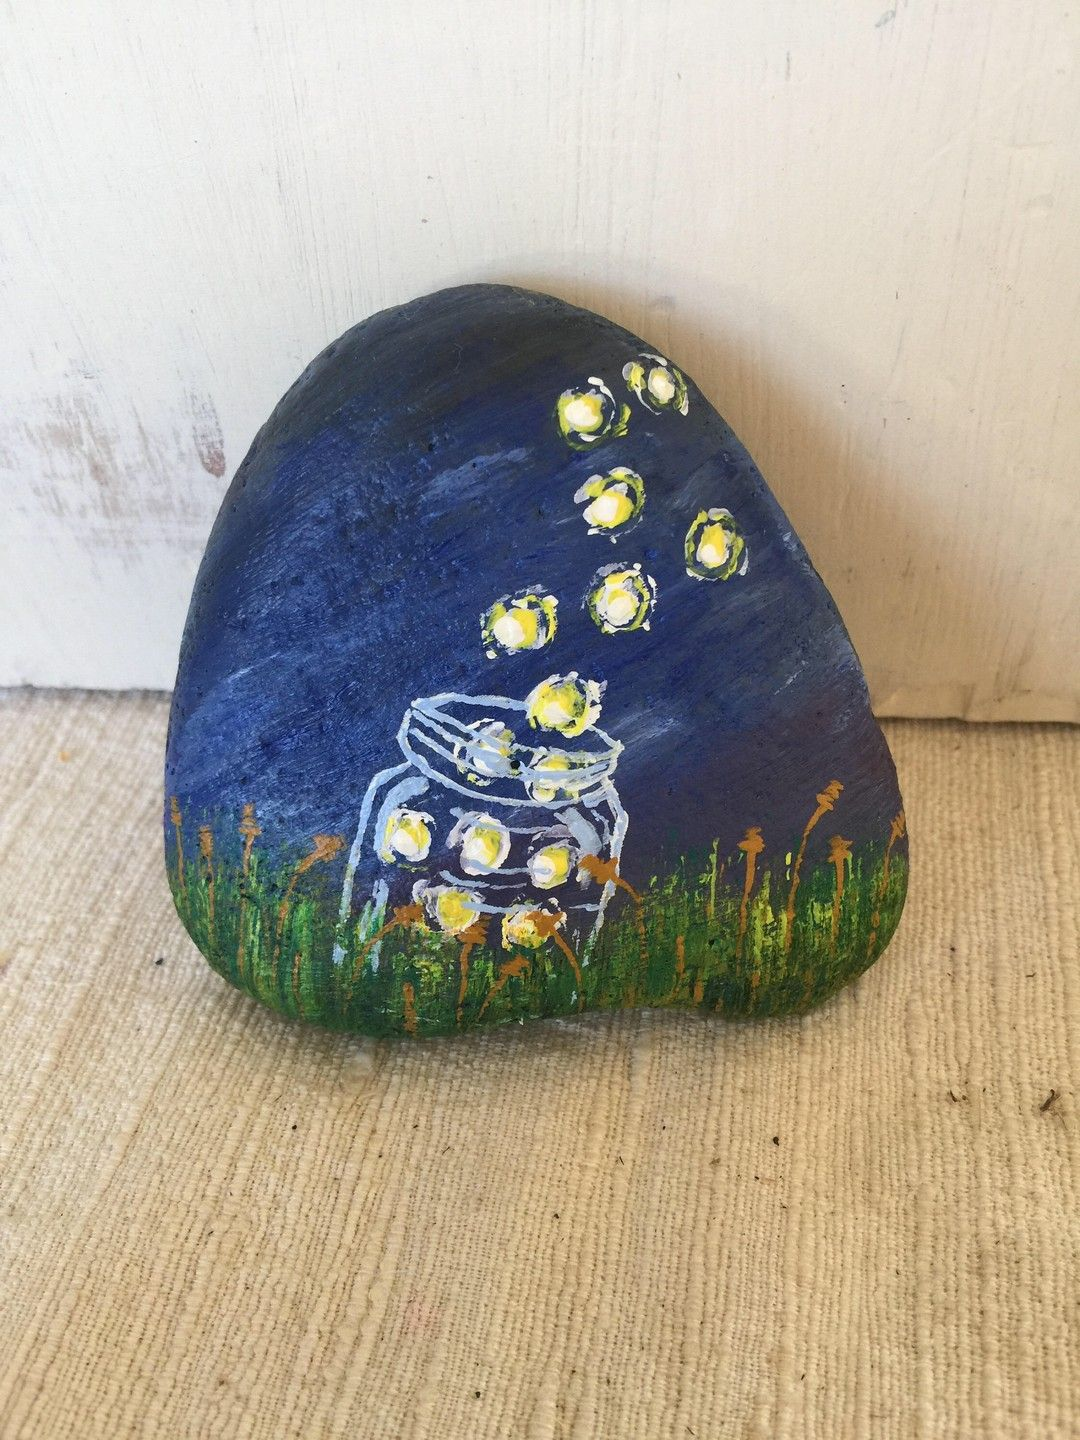 Diy Ideas Of Painted Rocks With Inspirational Picture And Words